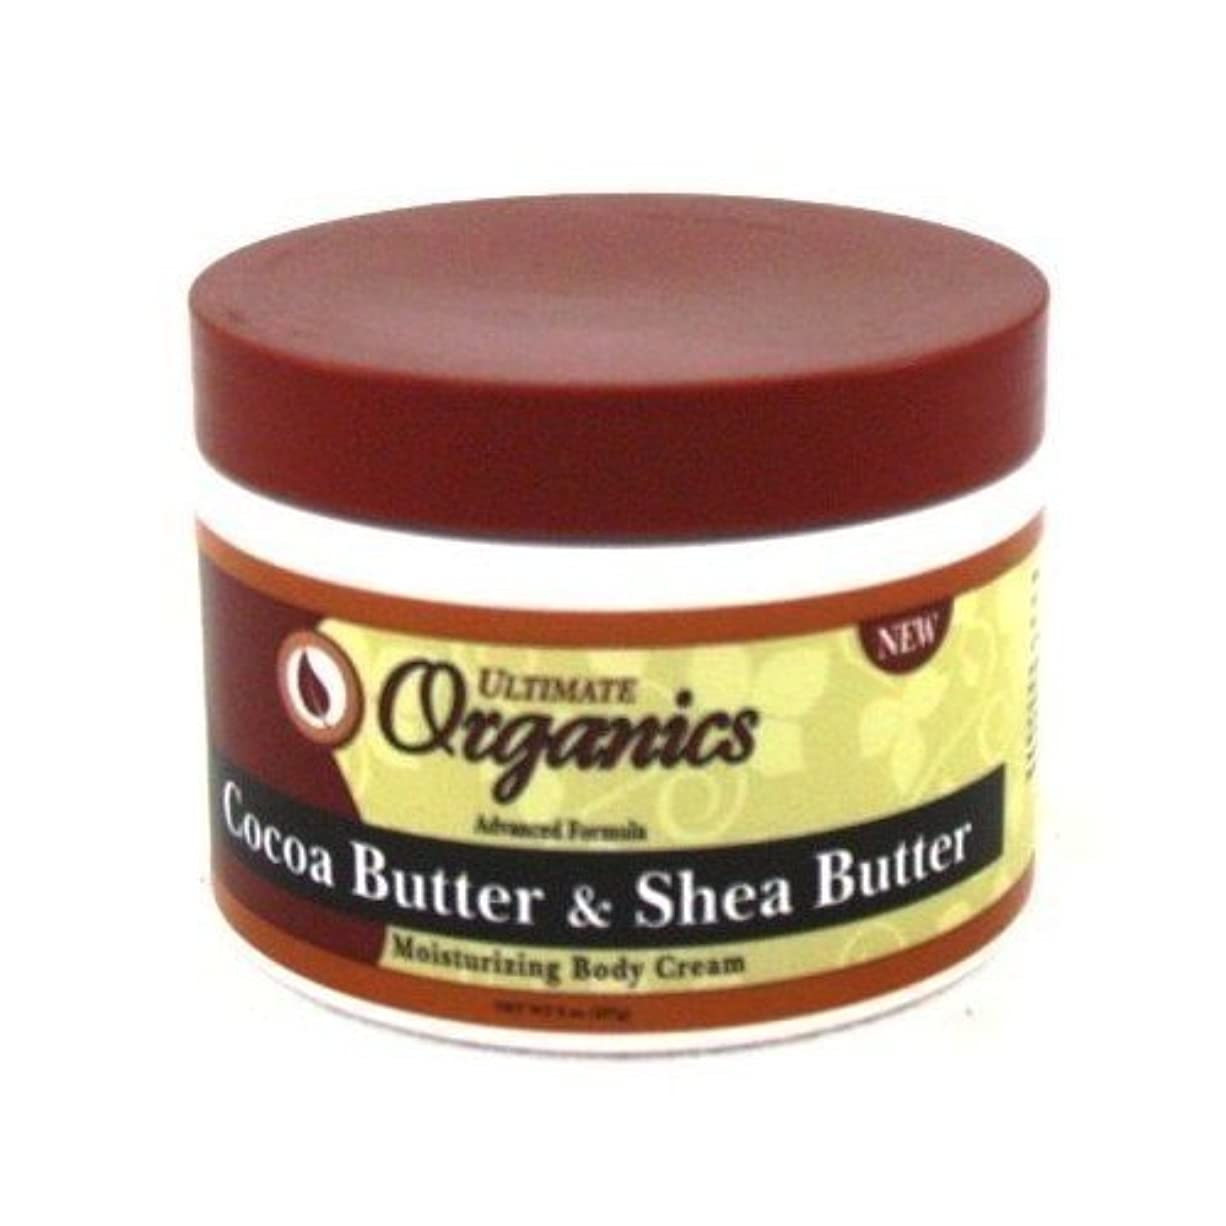 Ultimate Organics Cocoa Butter & Shea Butter Body Cream 235 ml (並行輸入品)